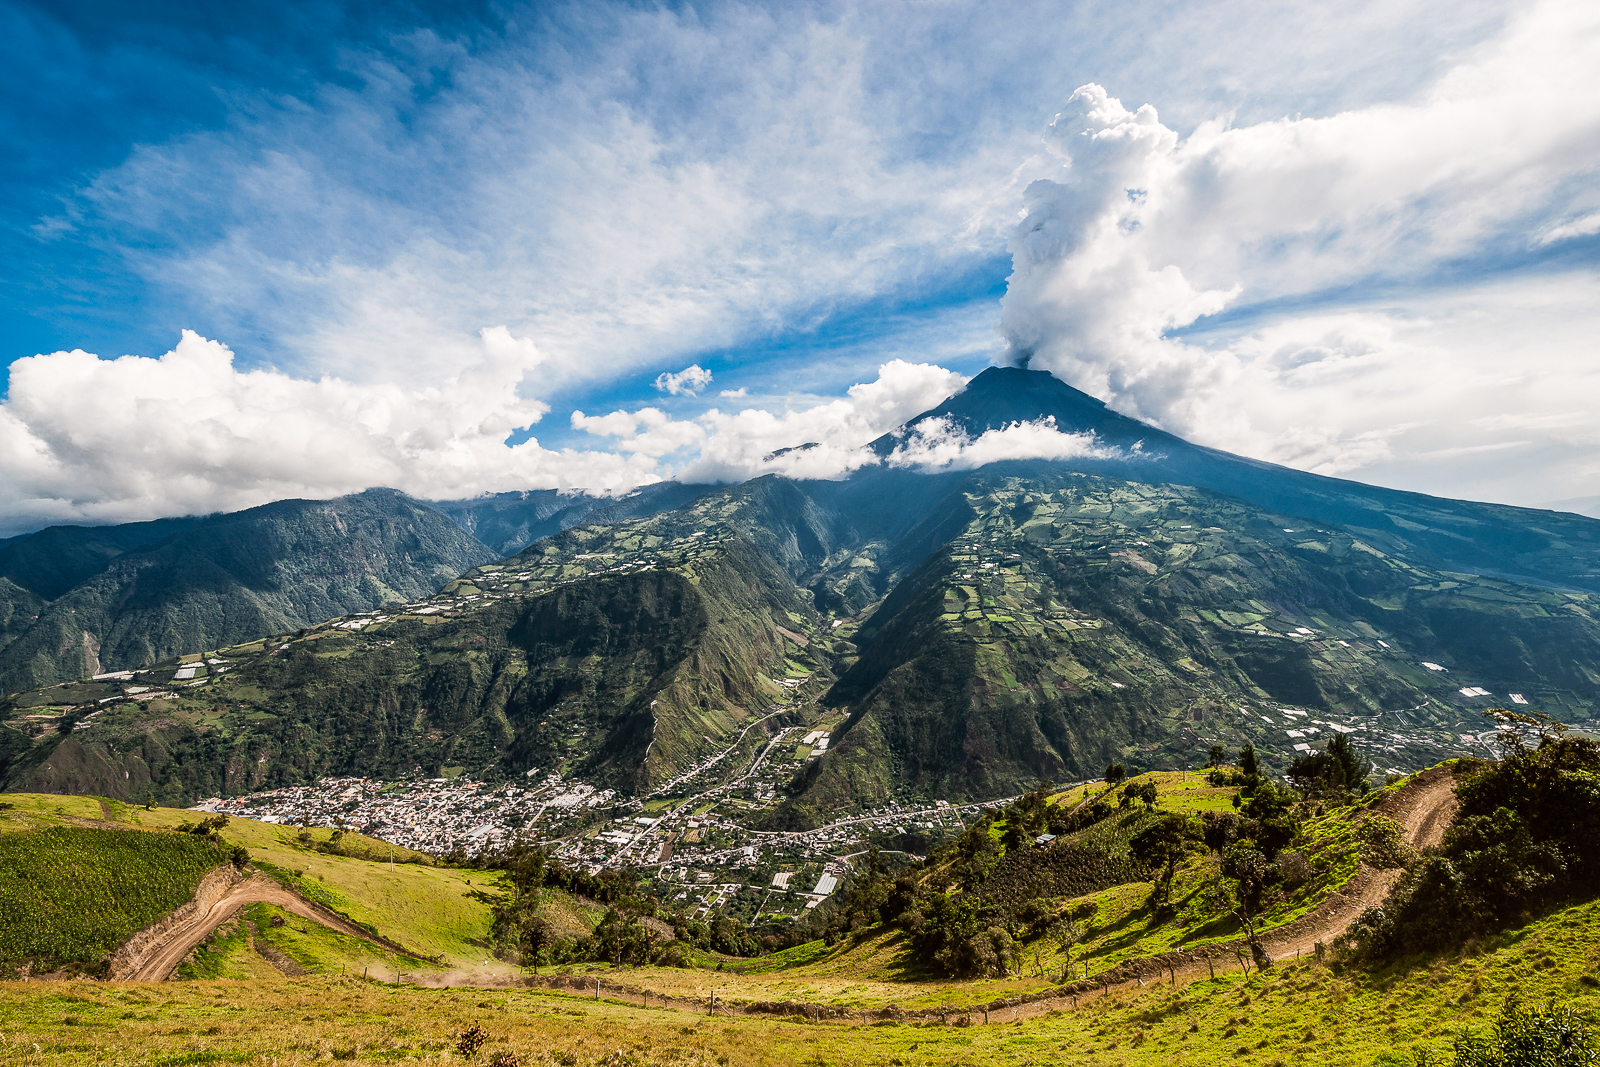 Things to do in Ecuador is visiting the town of Banos. With a nearby active volcano often erupting. Pictured is the Eruption of a volcano Tungurahua, Cordillera Occidental of the Andes of central Ecuador, South America